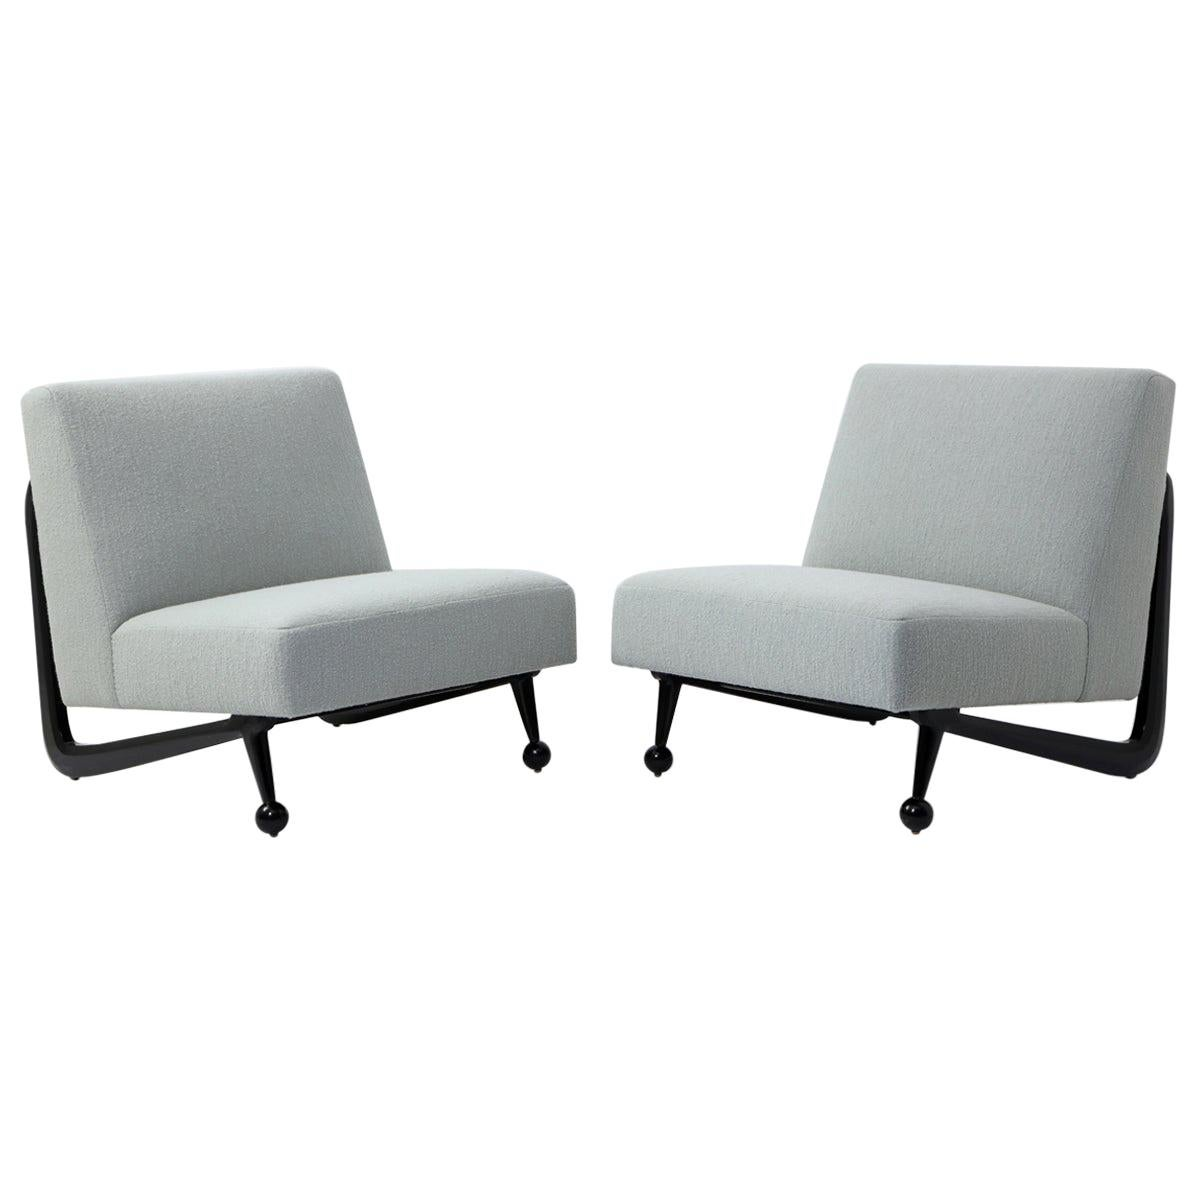 Pair of Slipper Chairs in the Style of Paul Lazslo